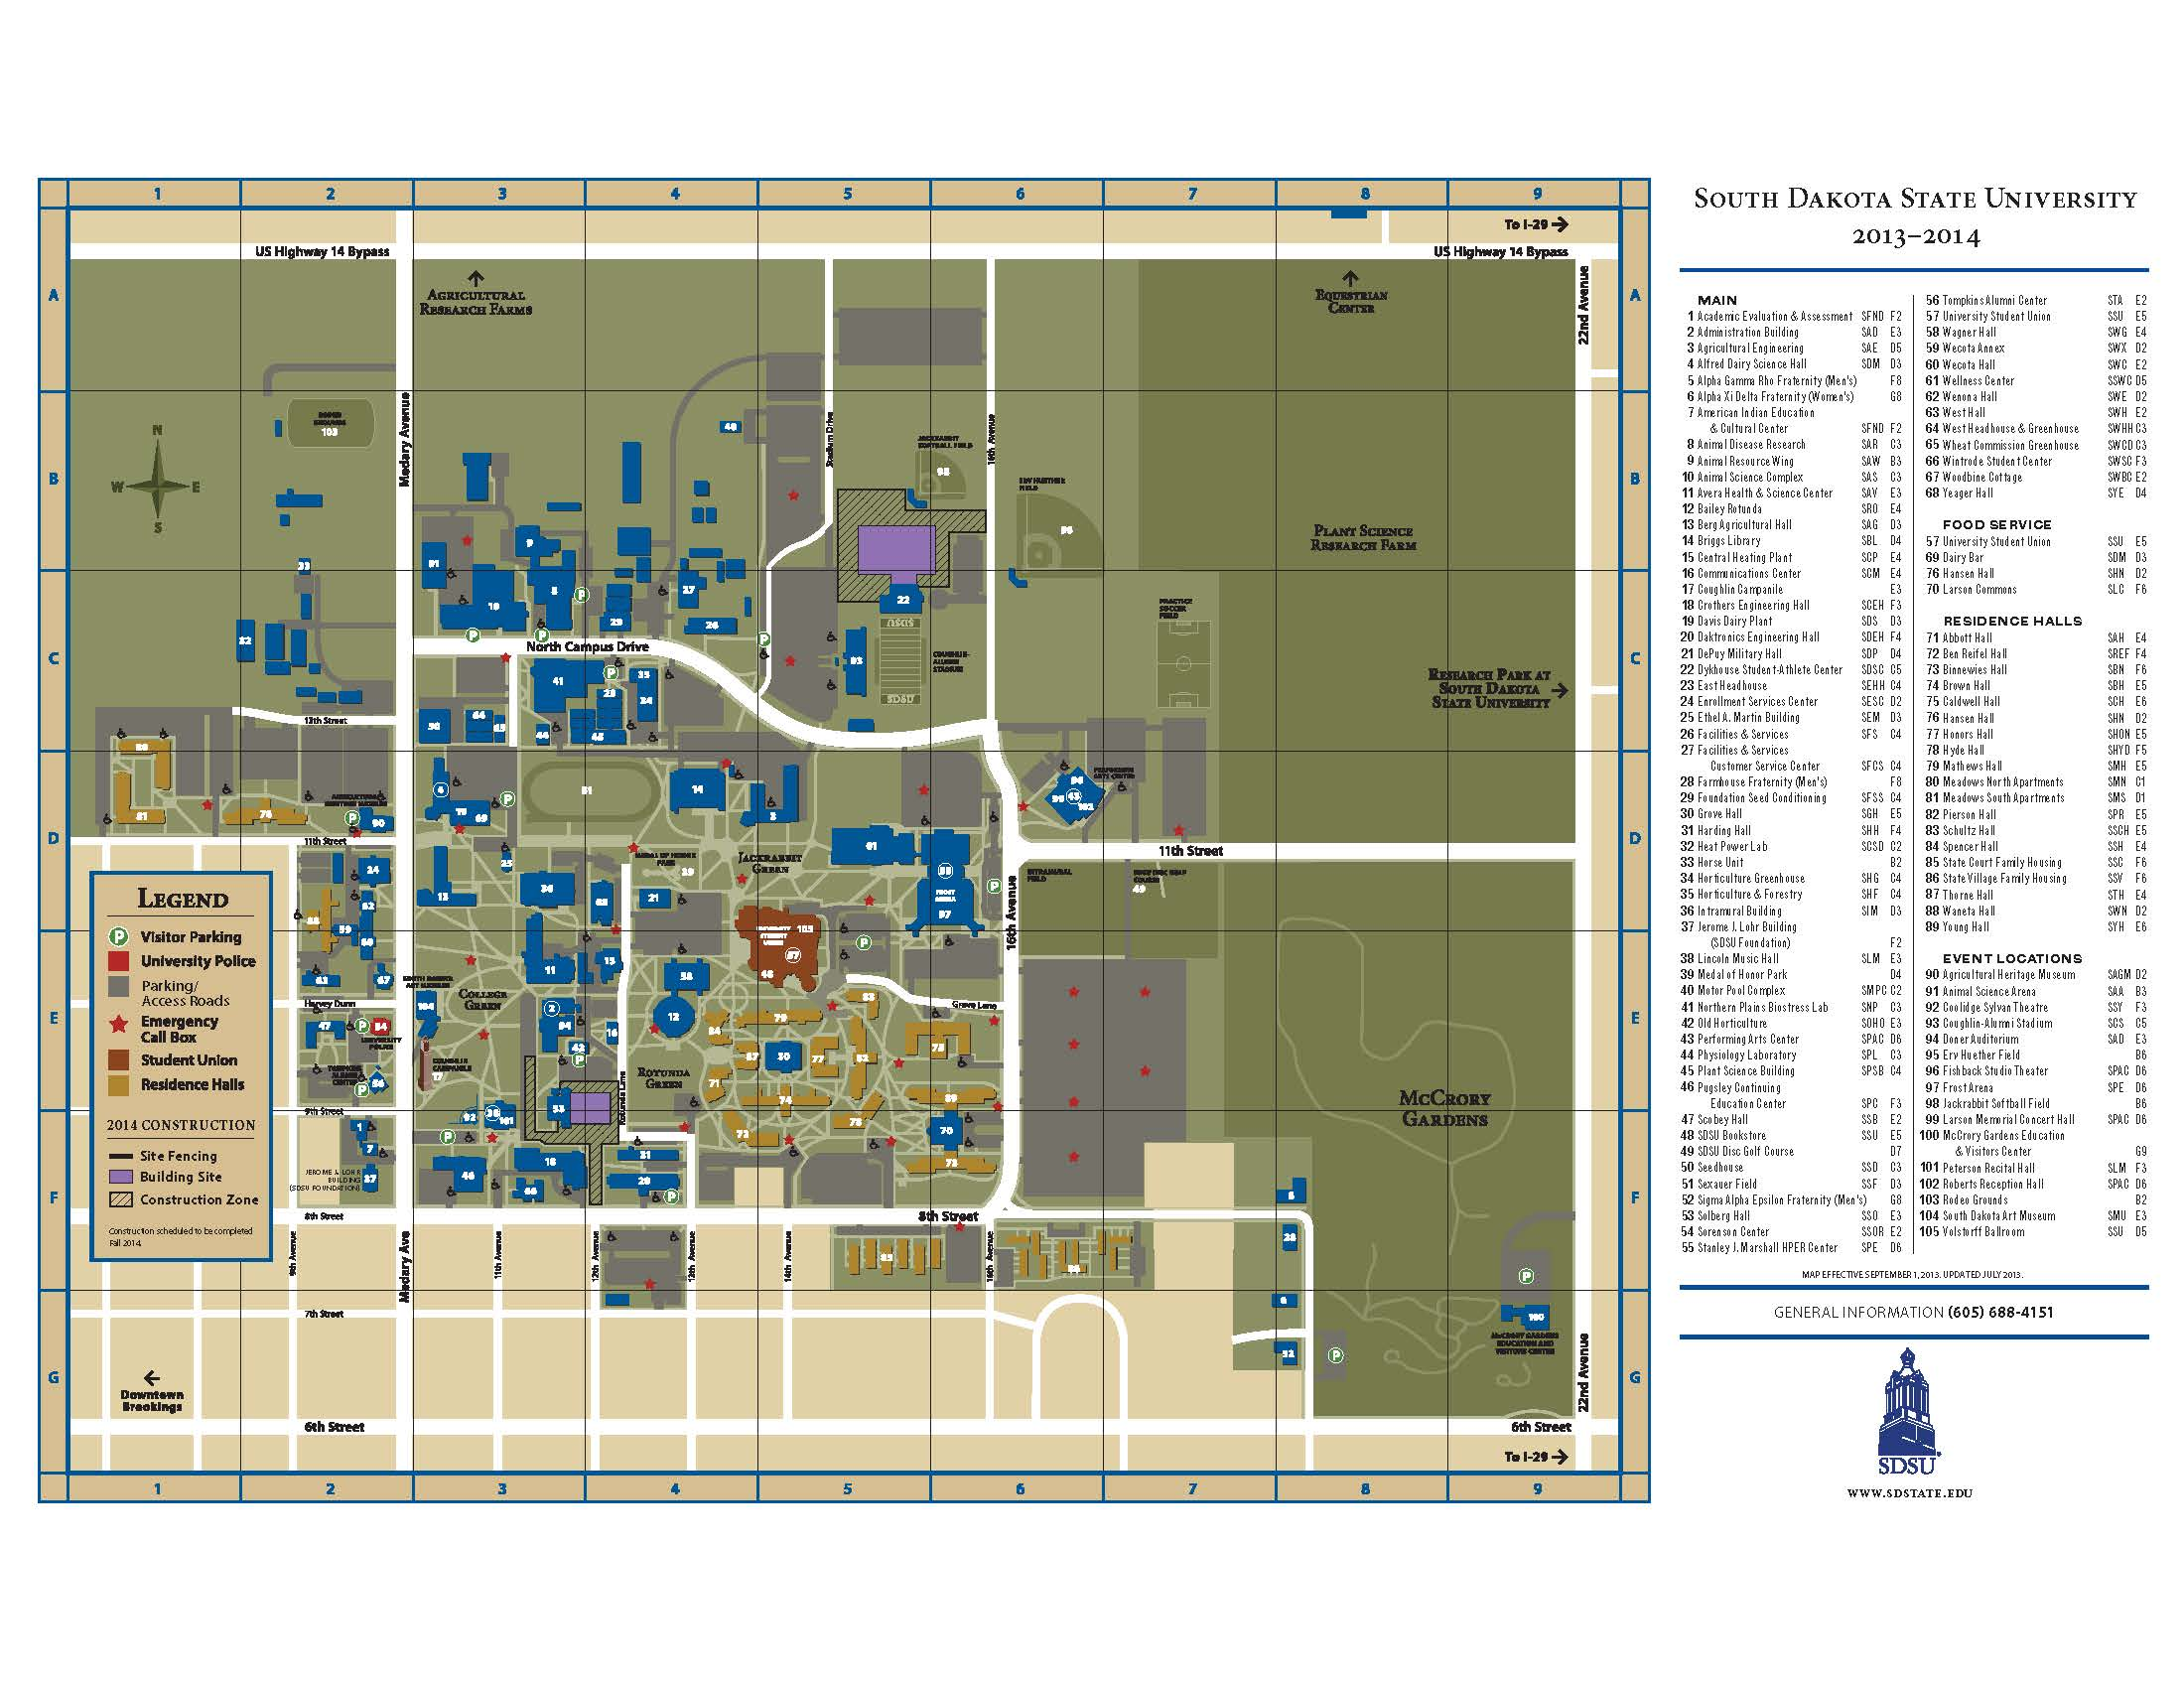 Campus Map  South Dakota State University  Acalog ACMS